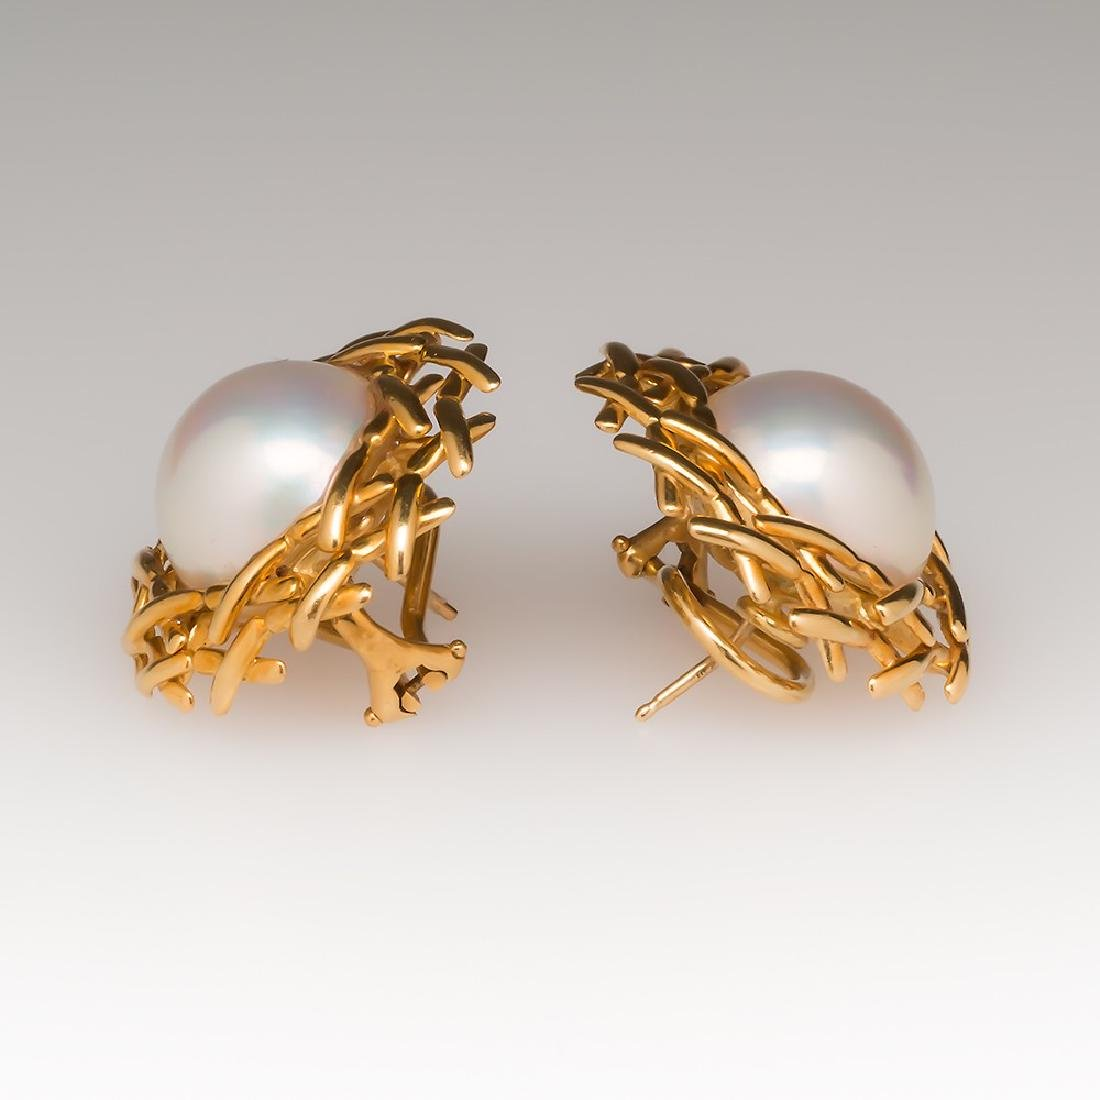 Tiffany & Co 18K Gold Mabe Pearl Earring Clips - 2